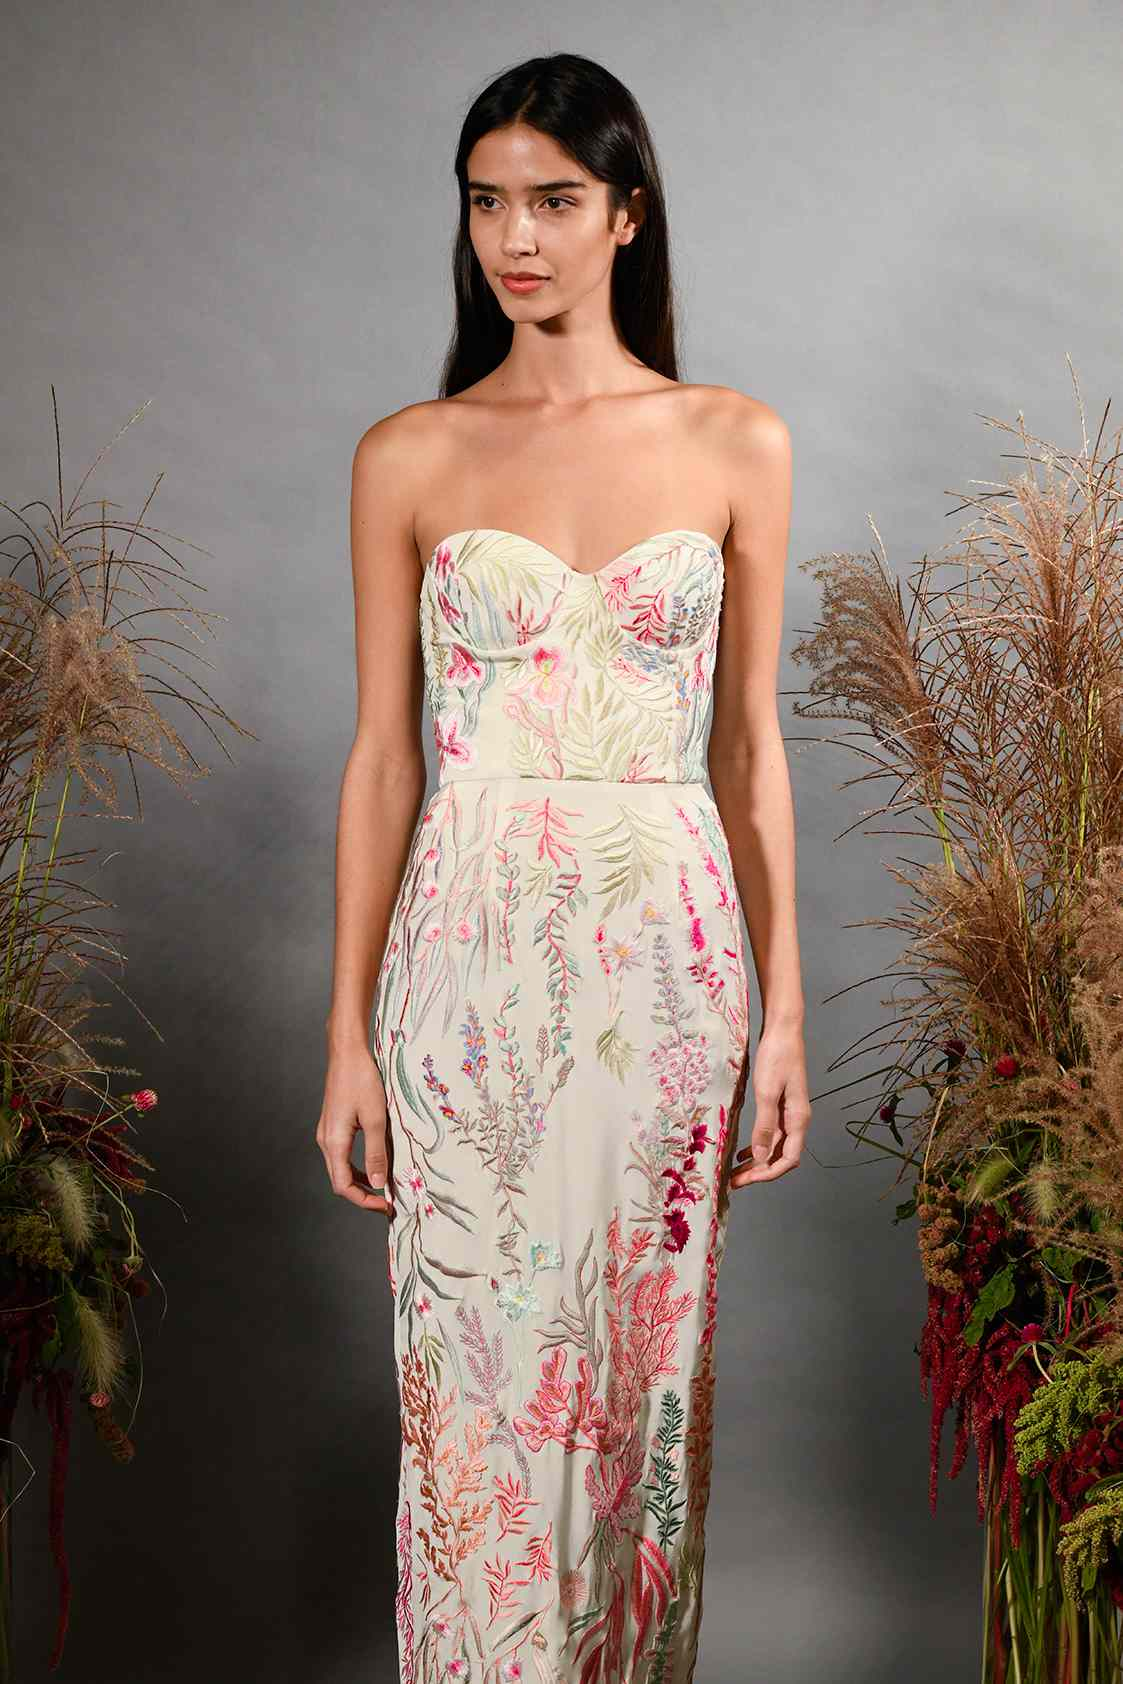 Model in strapless embroidered wedding dress